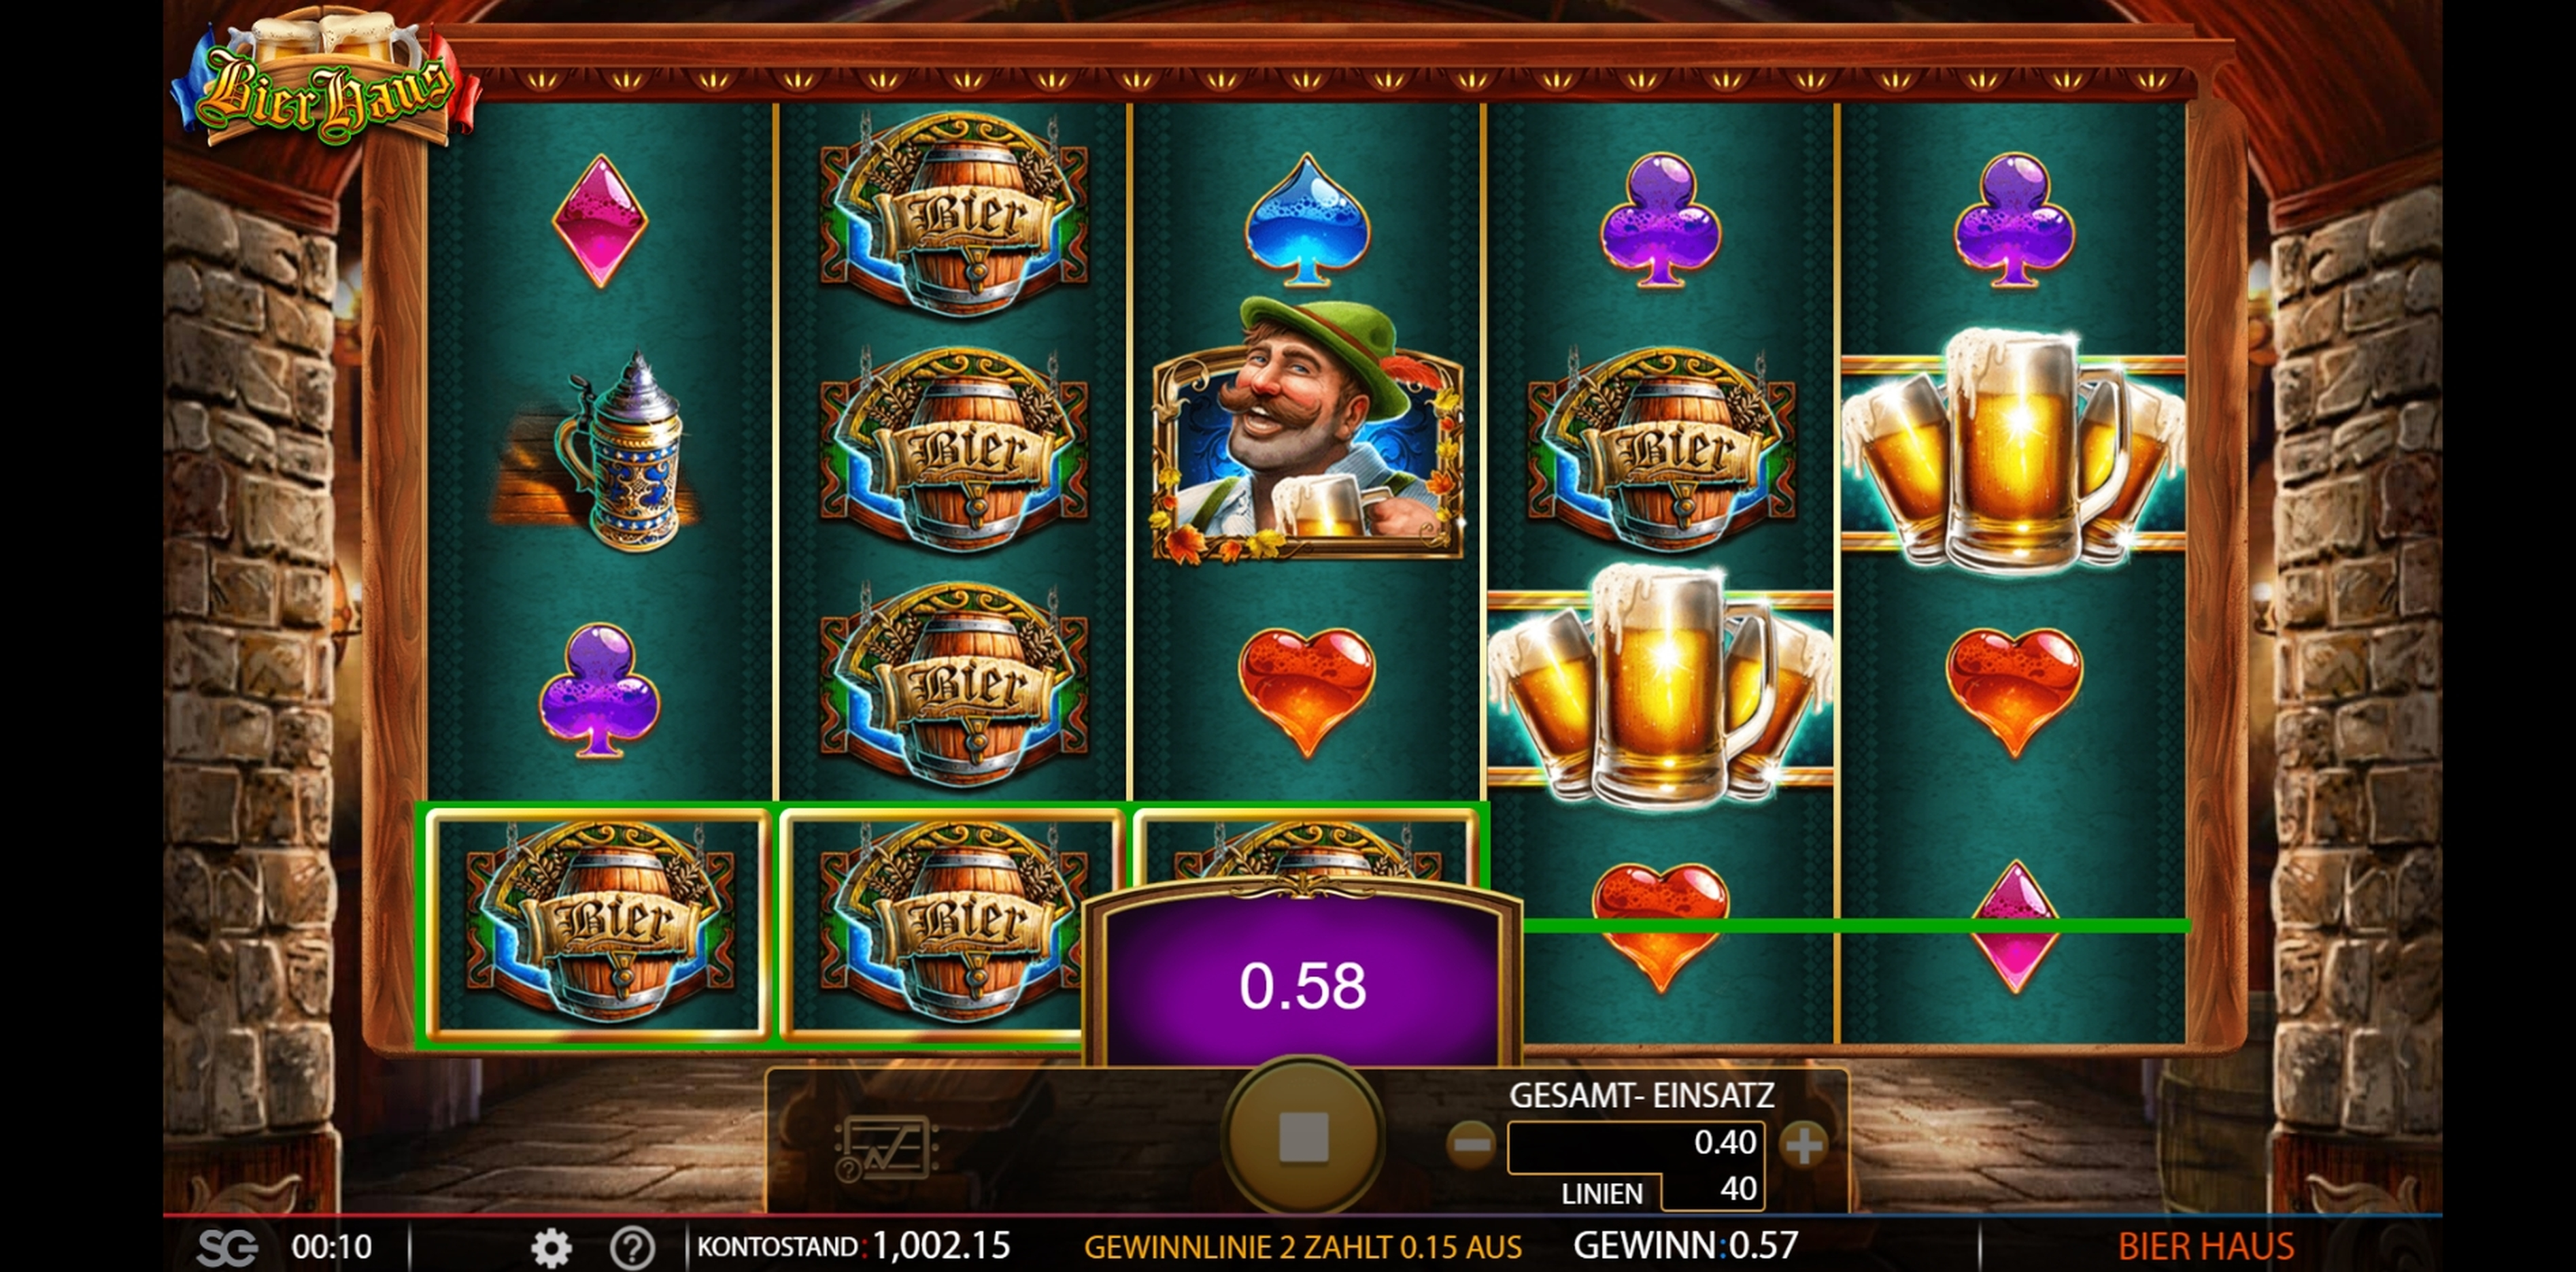 Win Money in Bier Haus Free Slot Game by WMS